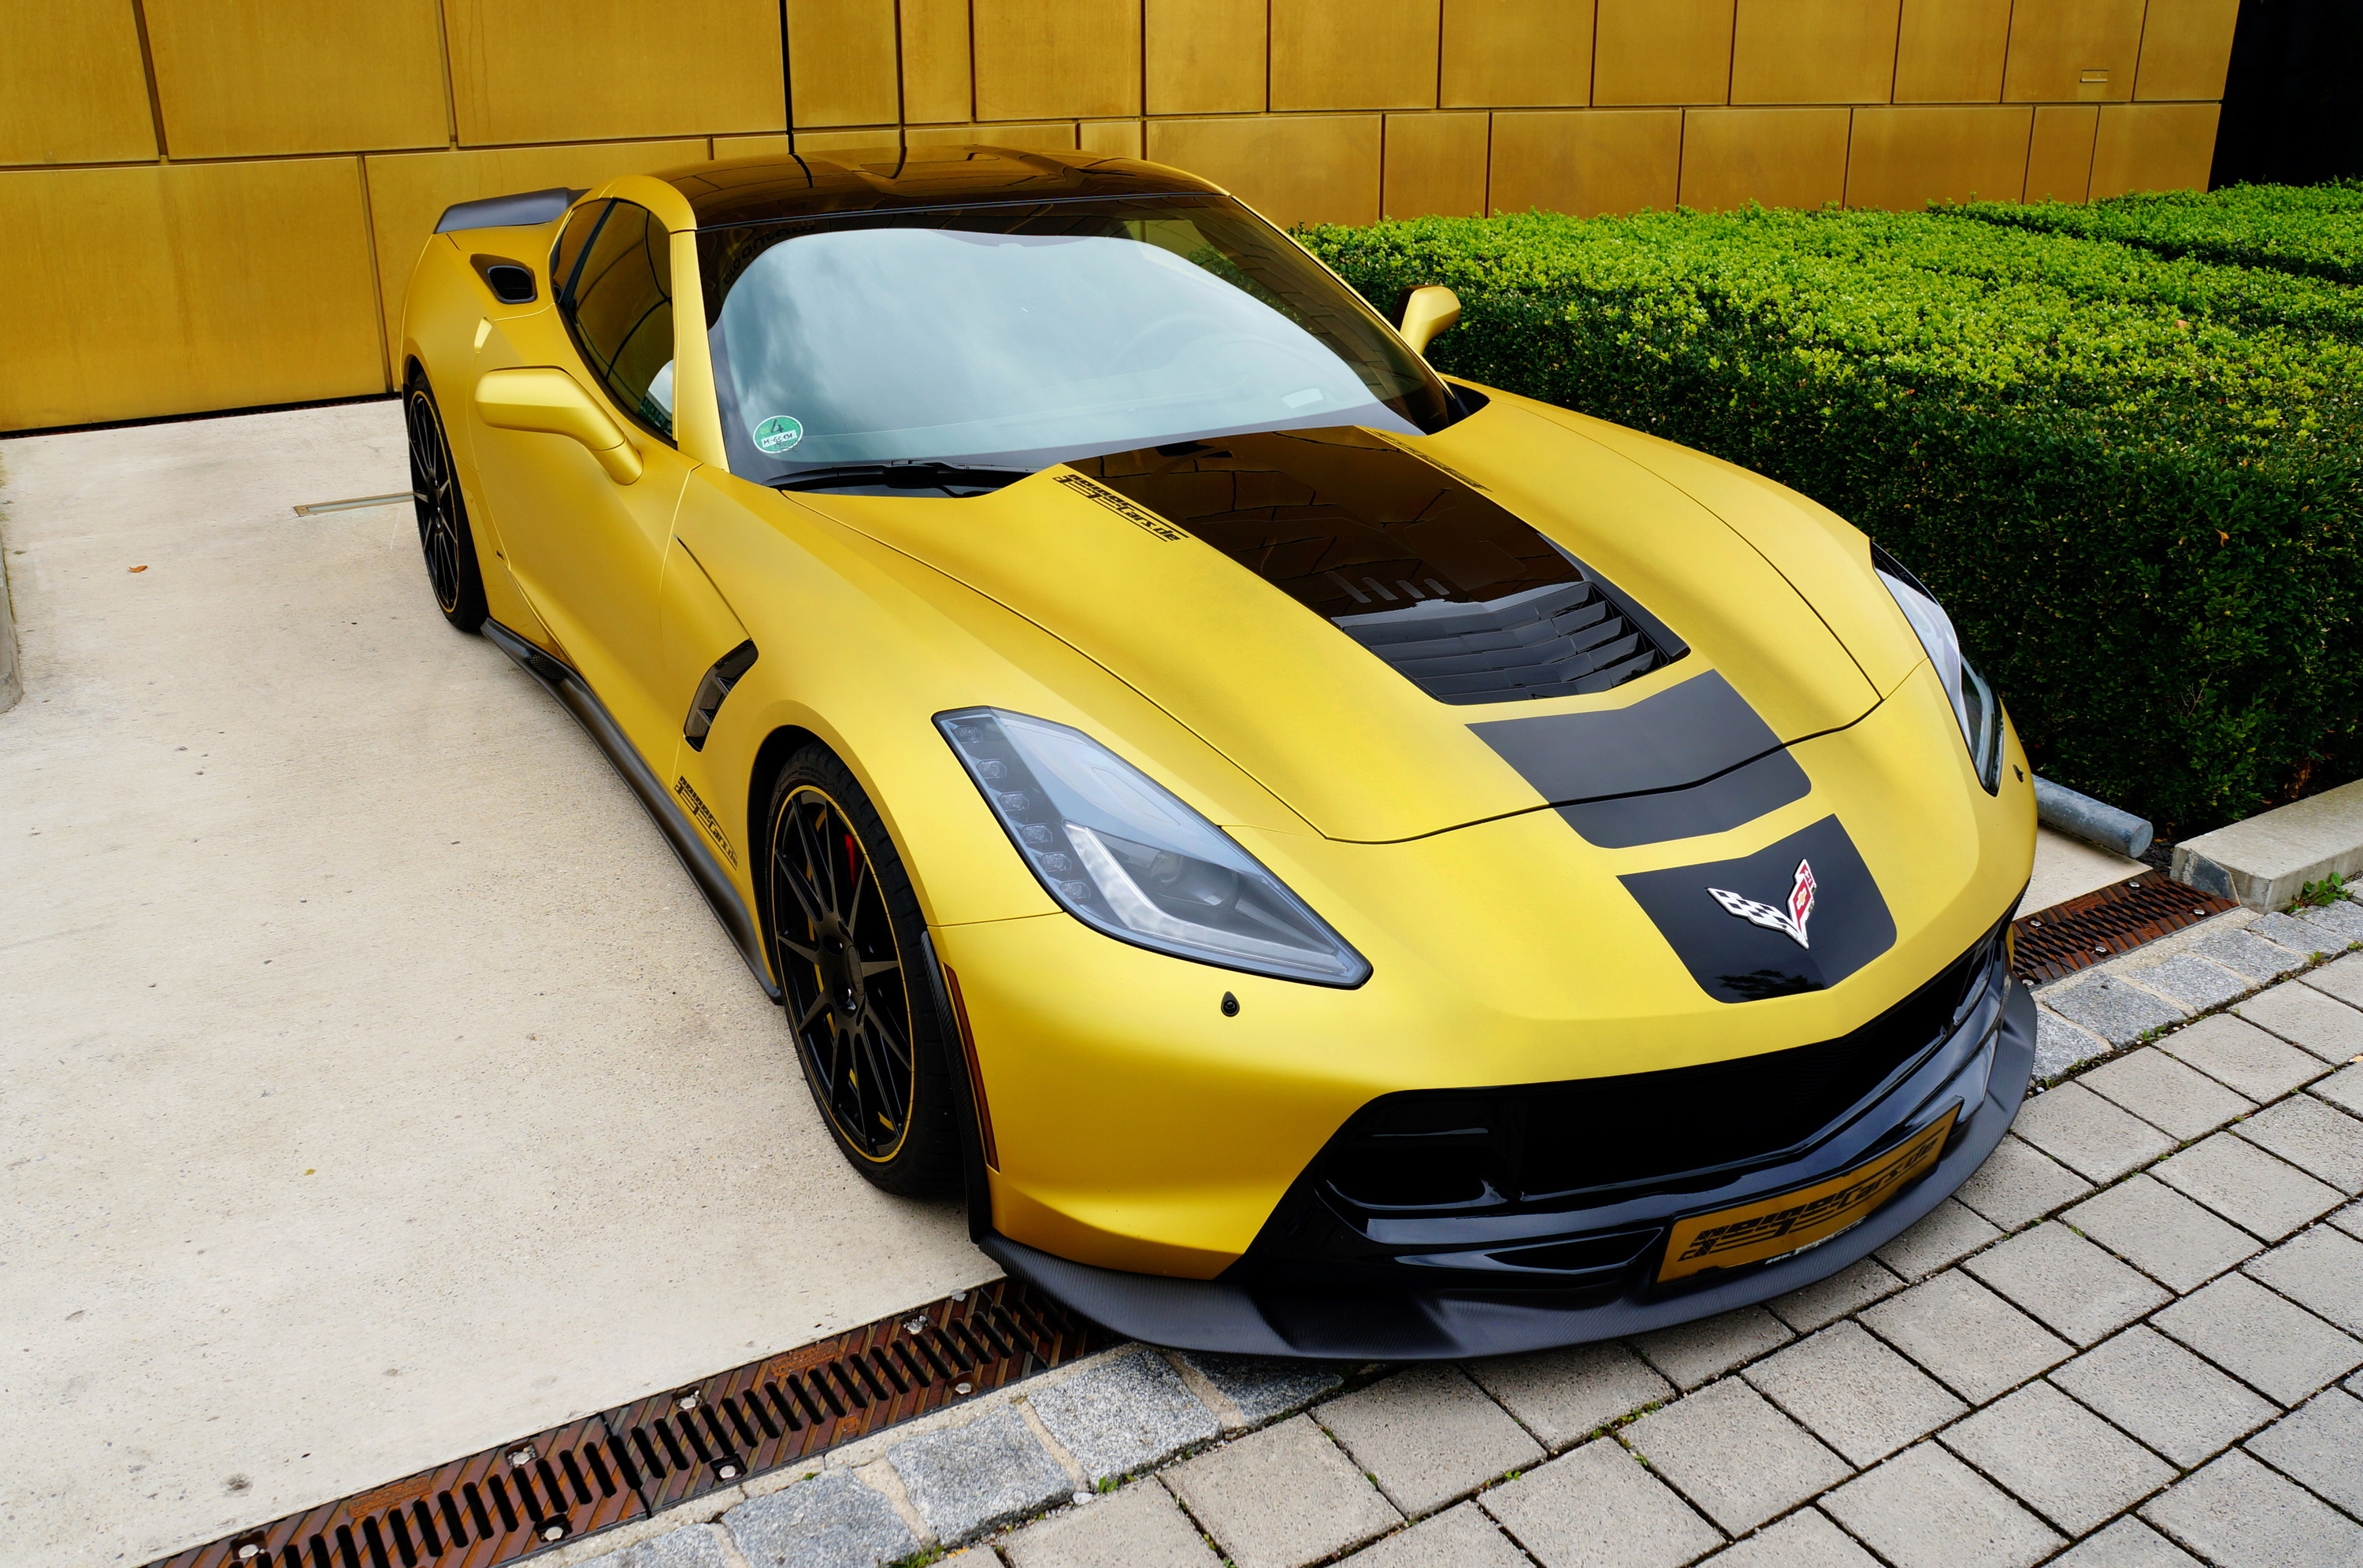 2014 Chevrolet Corvette C7 Stingray By Geigercars Top Speed